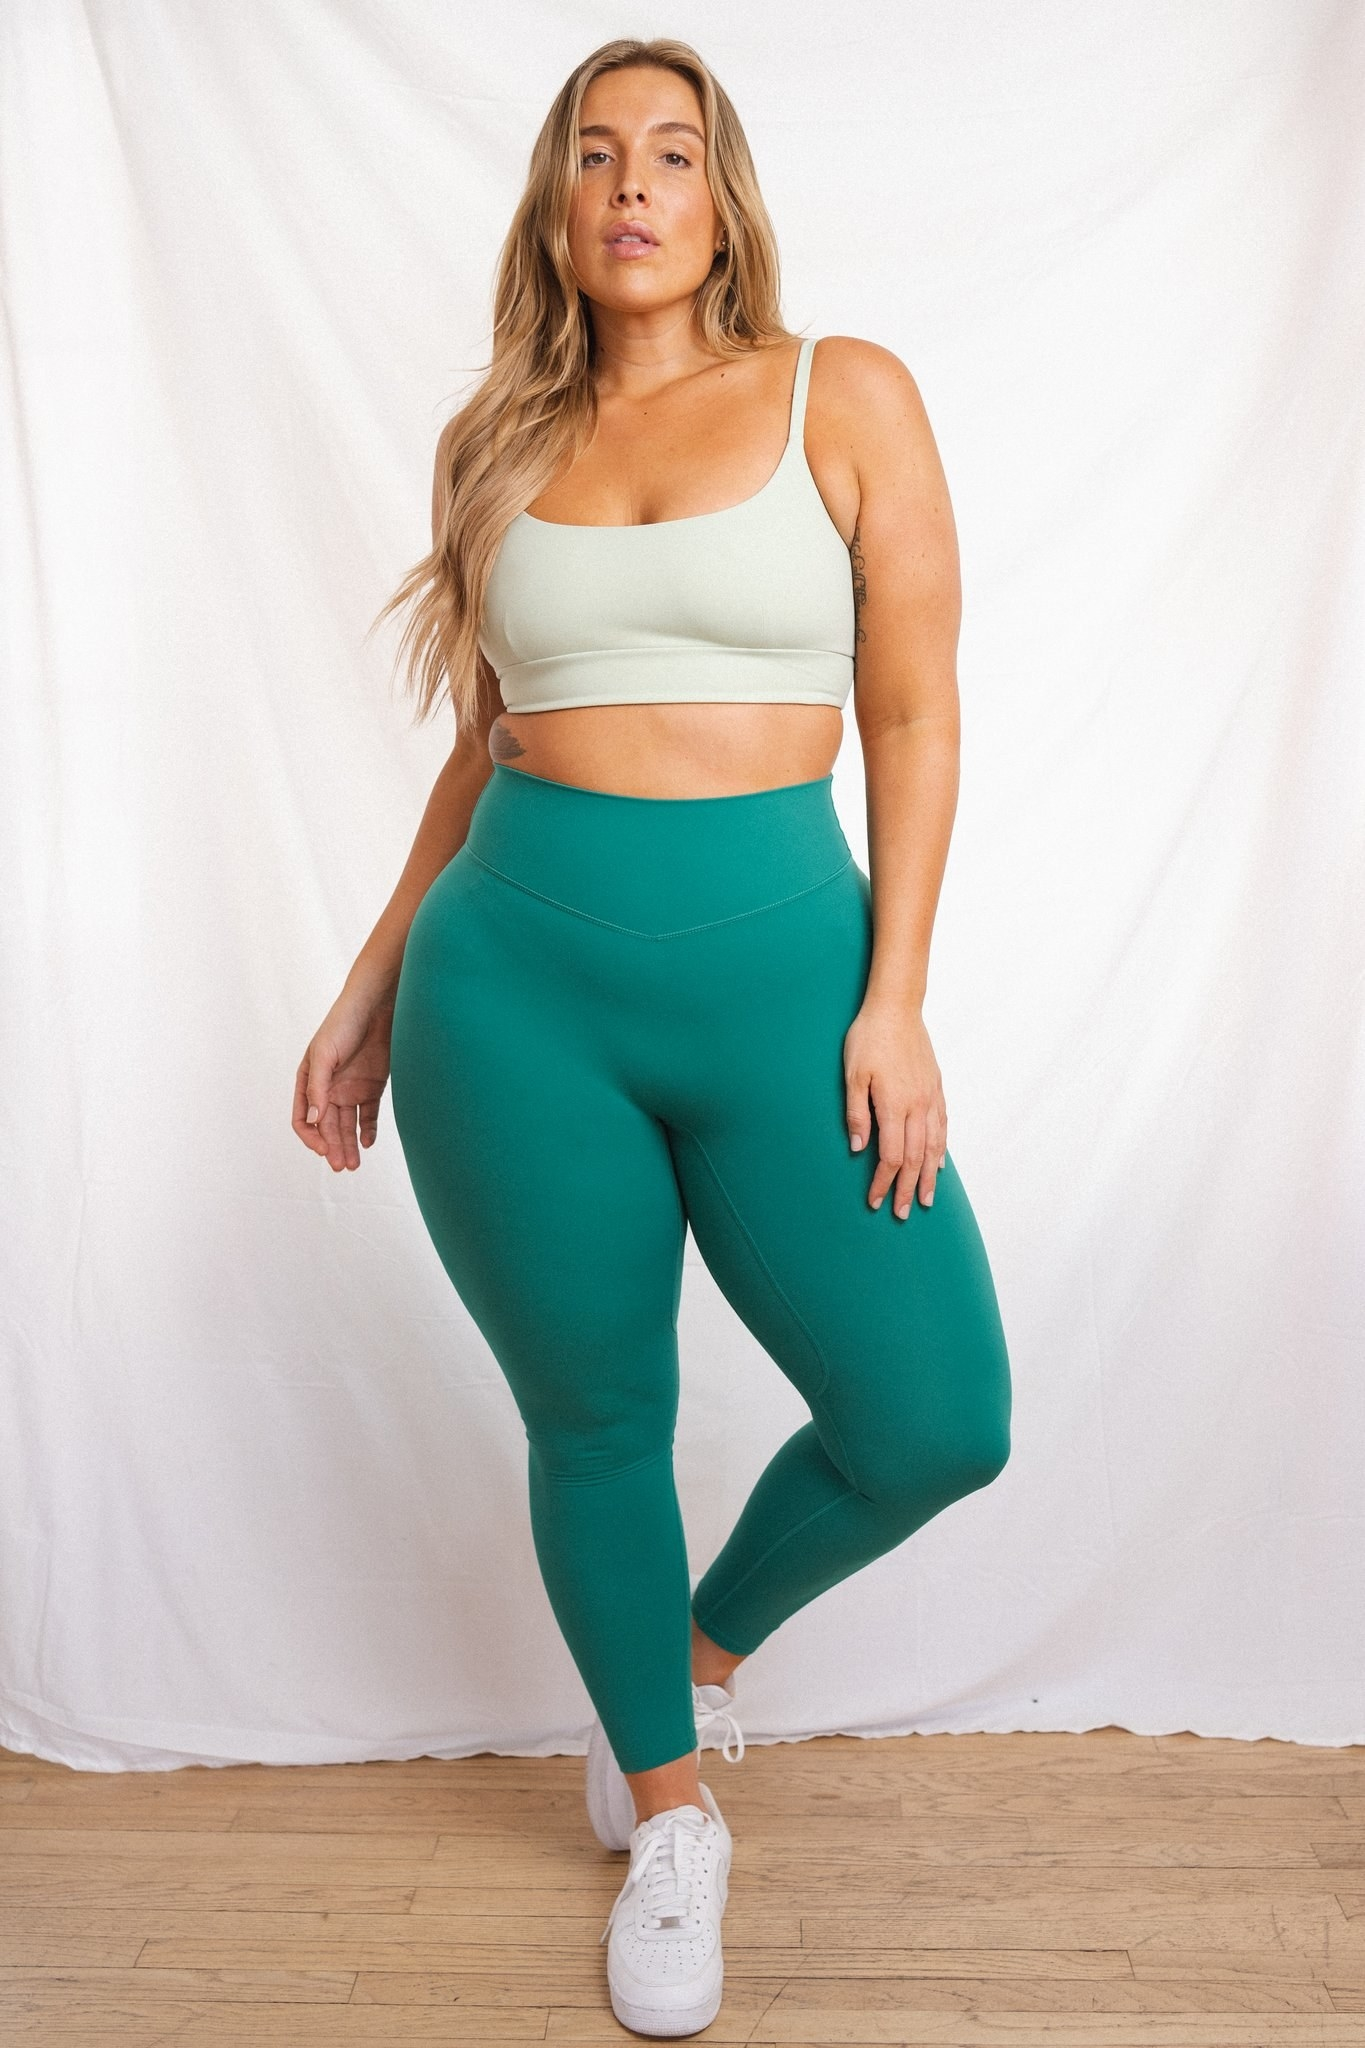 model wearing the green leggings